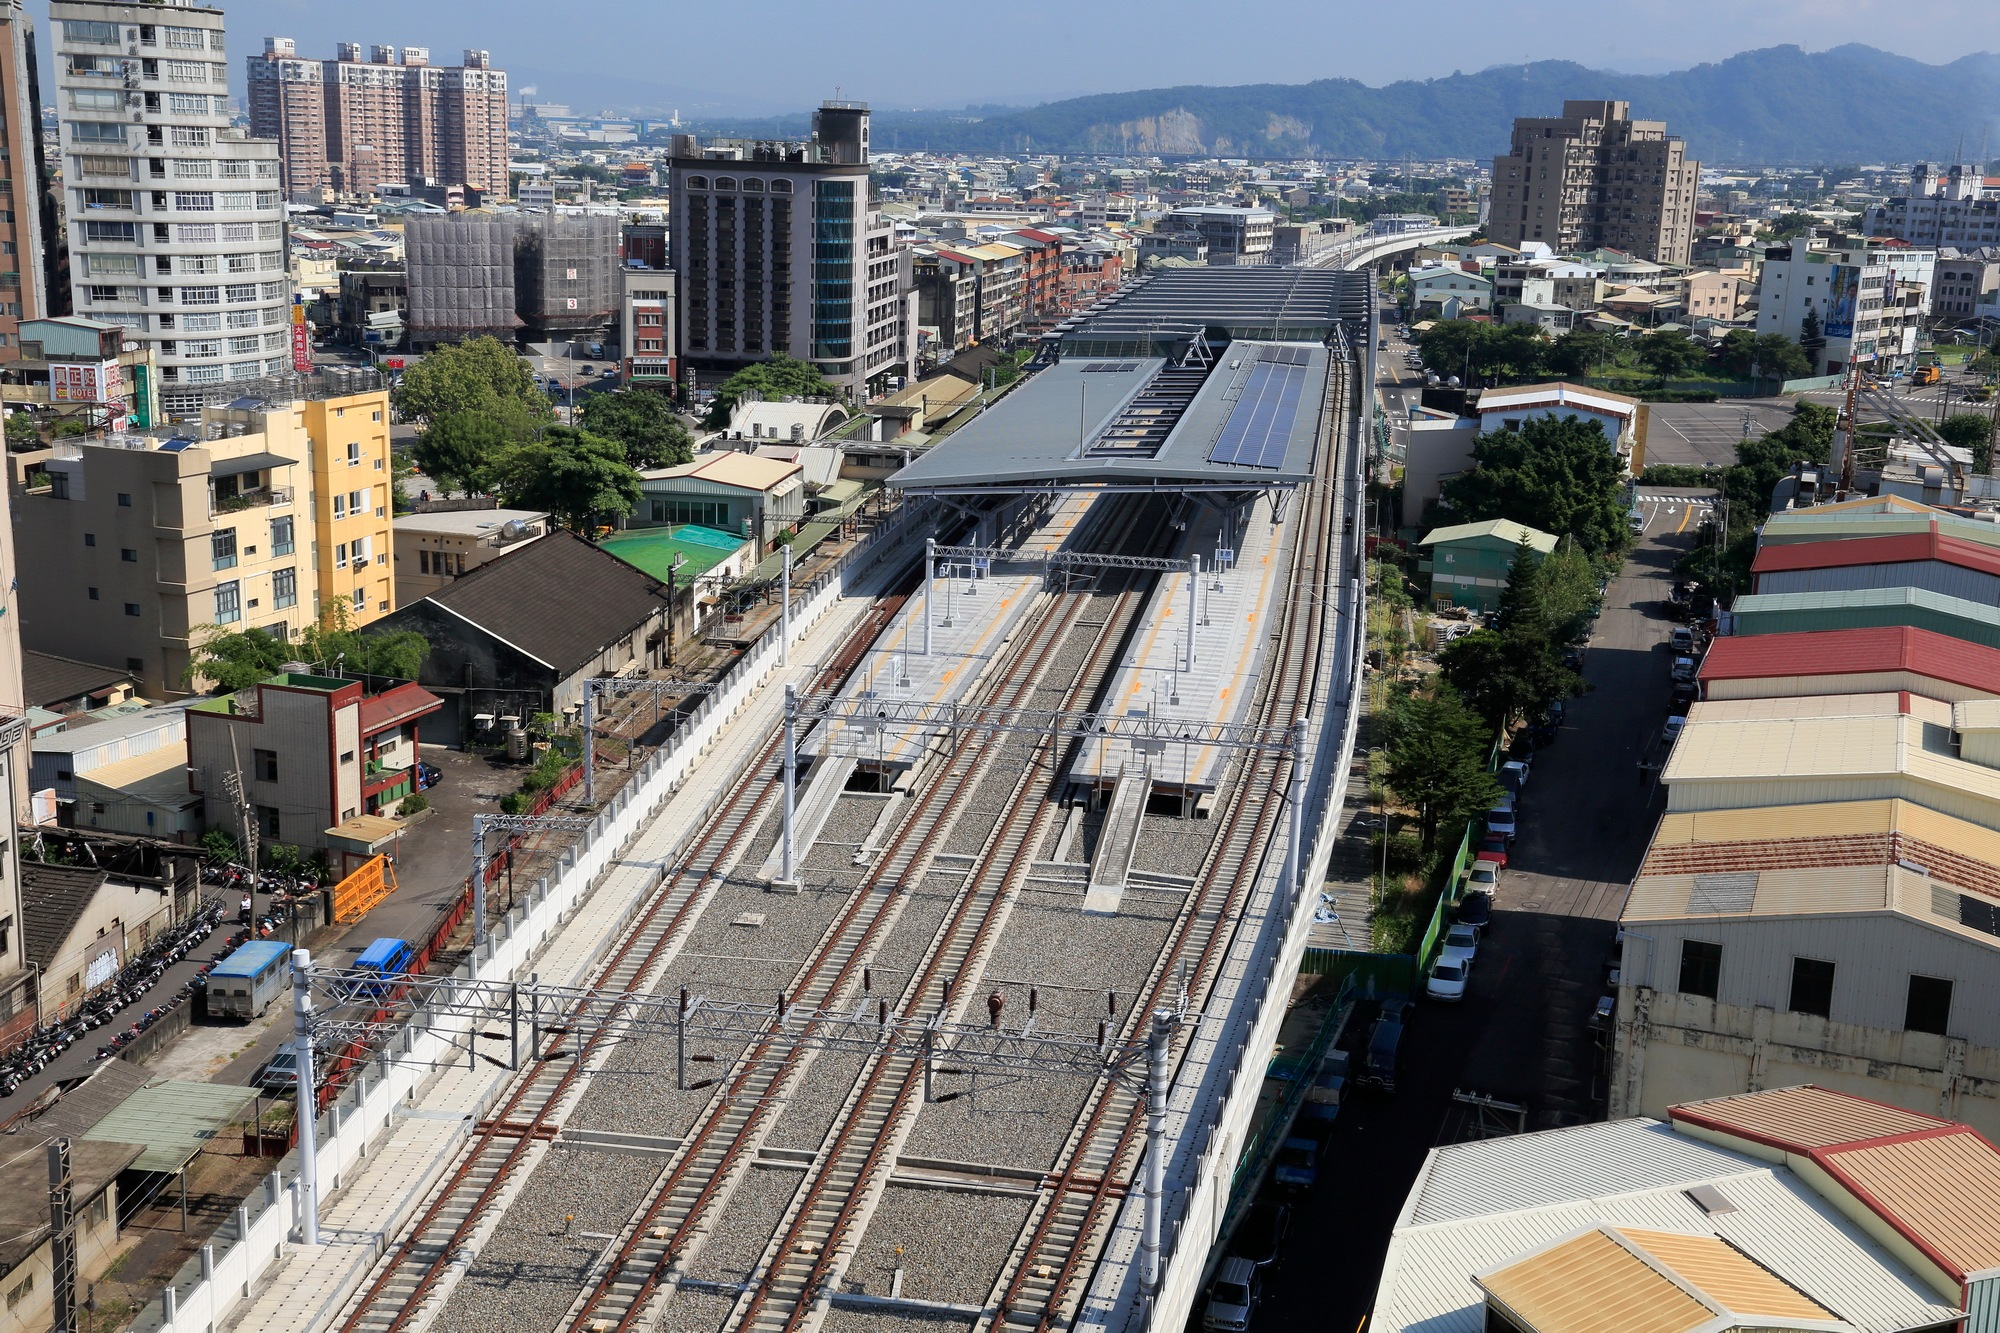 New train station by chaoyang chan